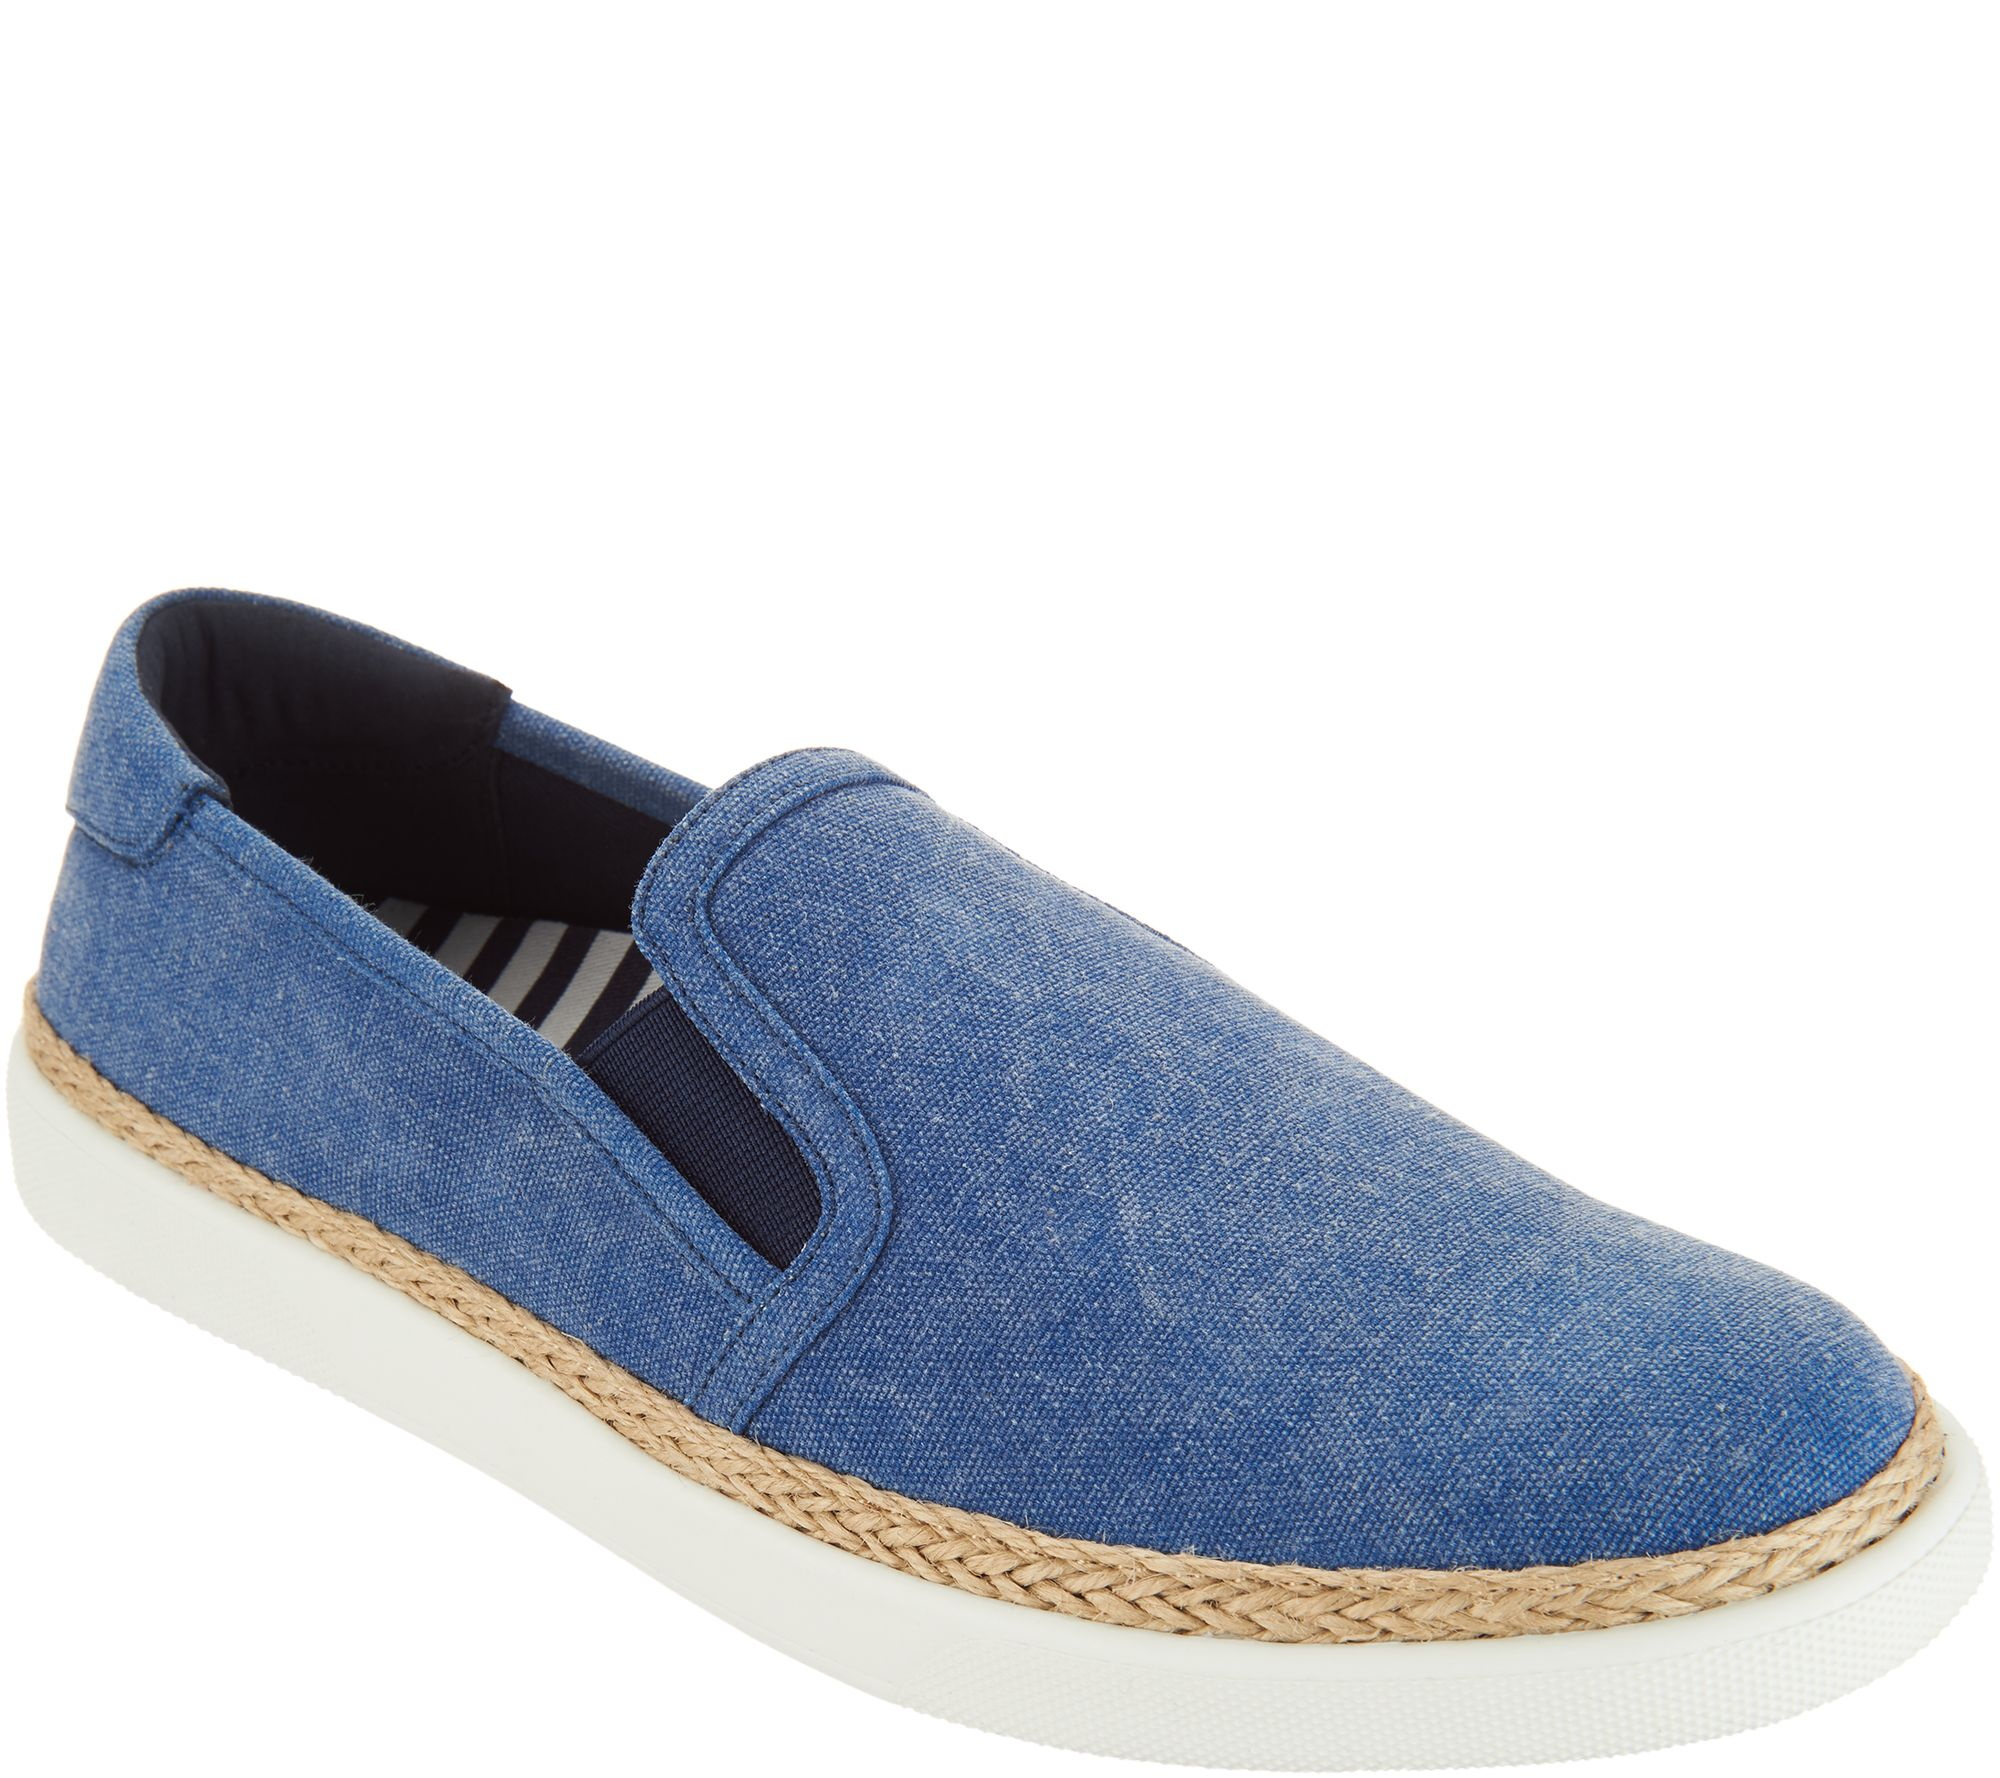 70f7f94620fb5 Vionic Canvas Slip-on Shoes - Rae - Page 1 — QVC.com